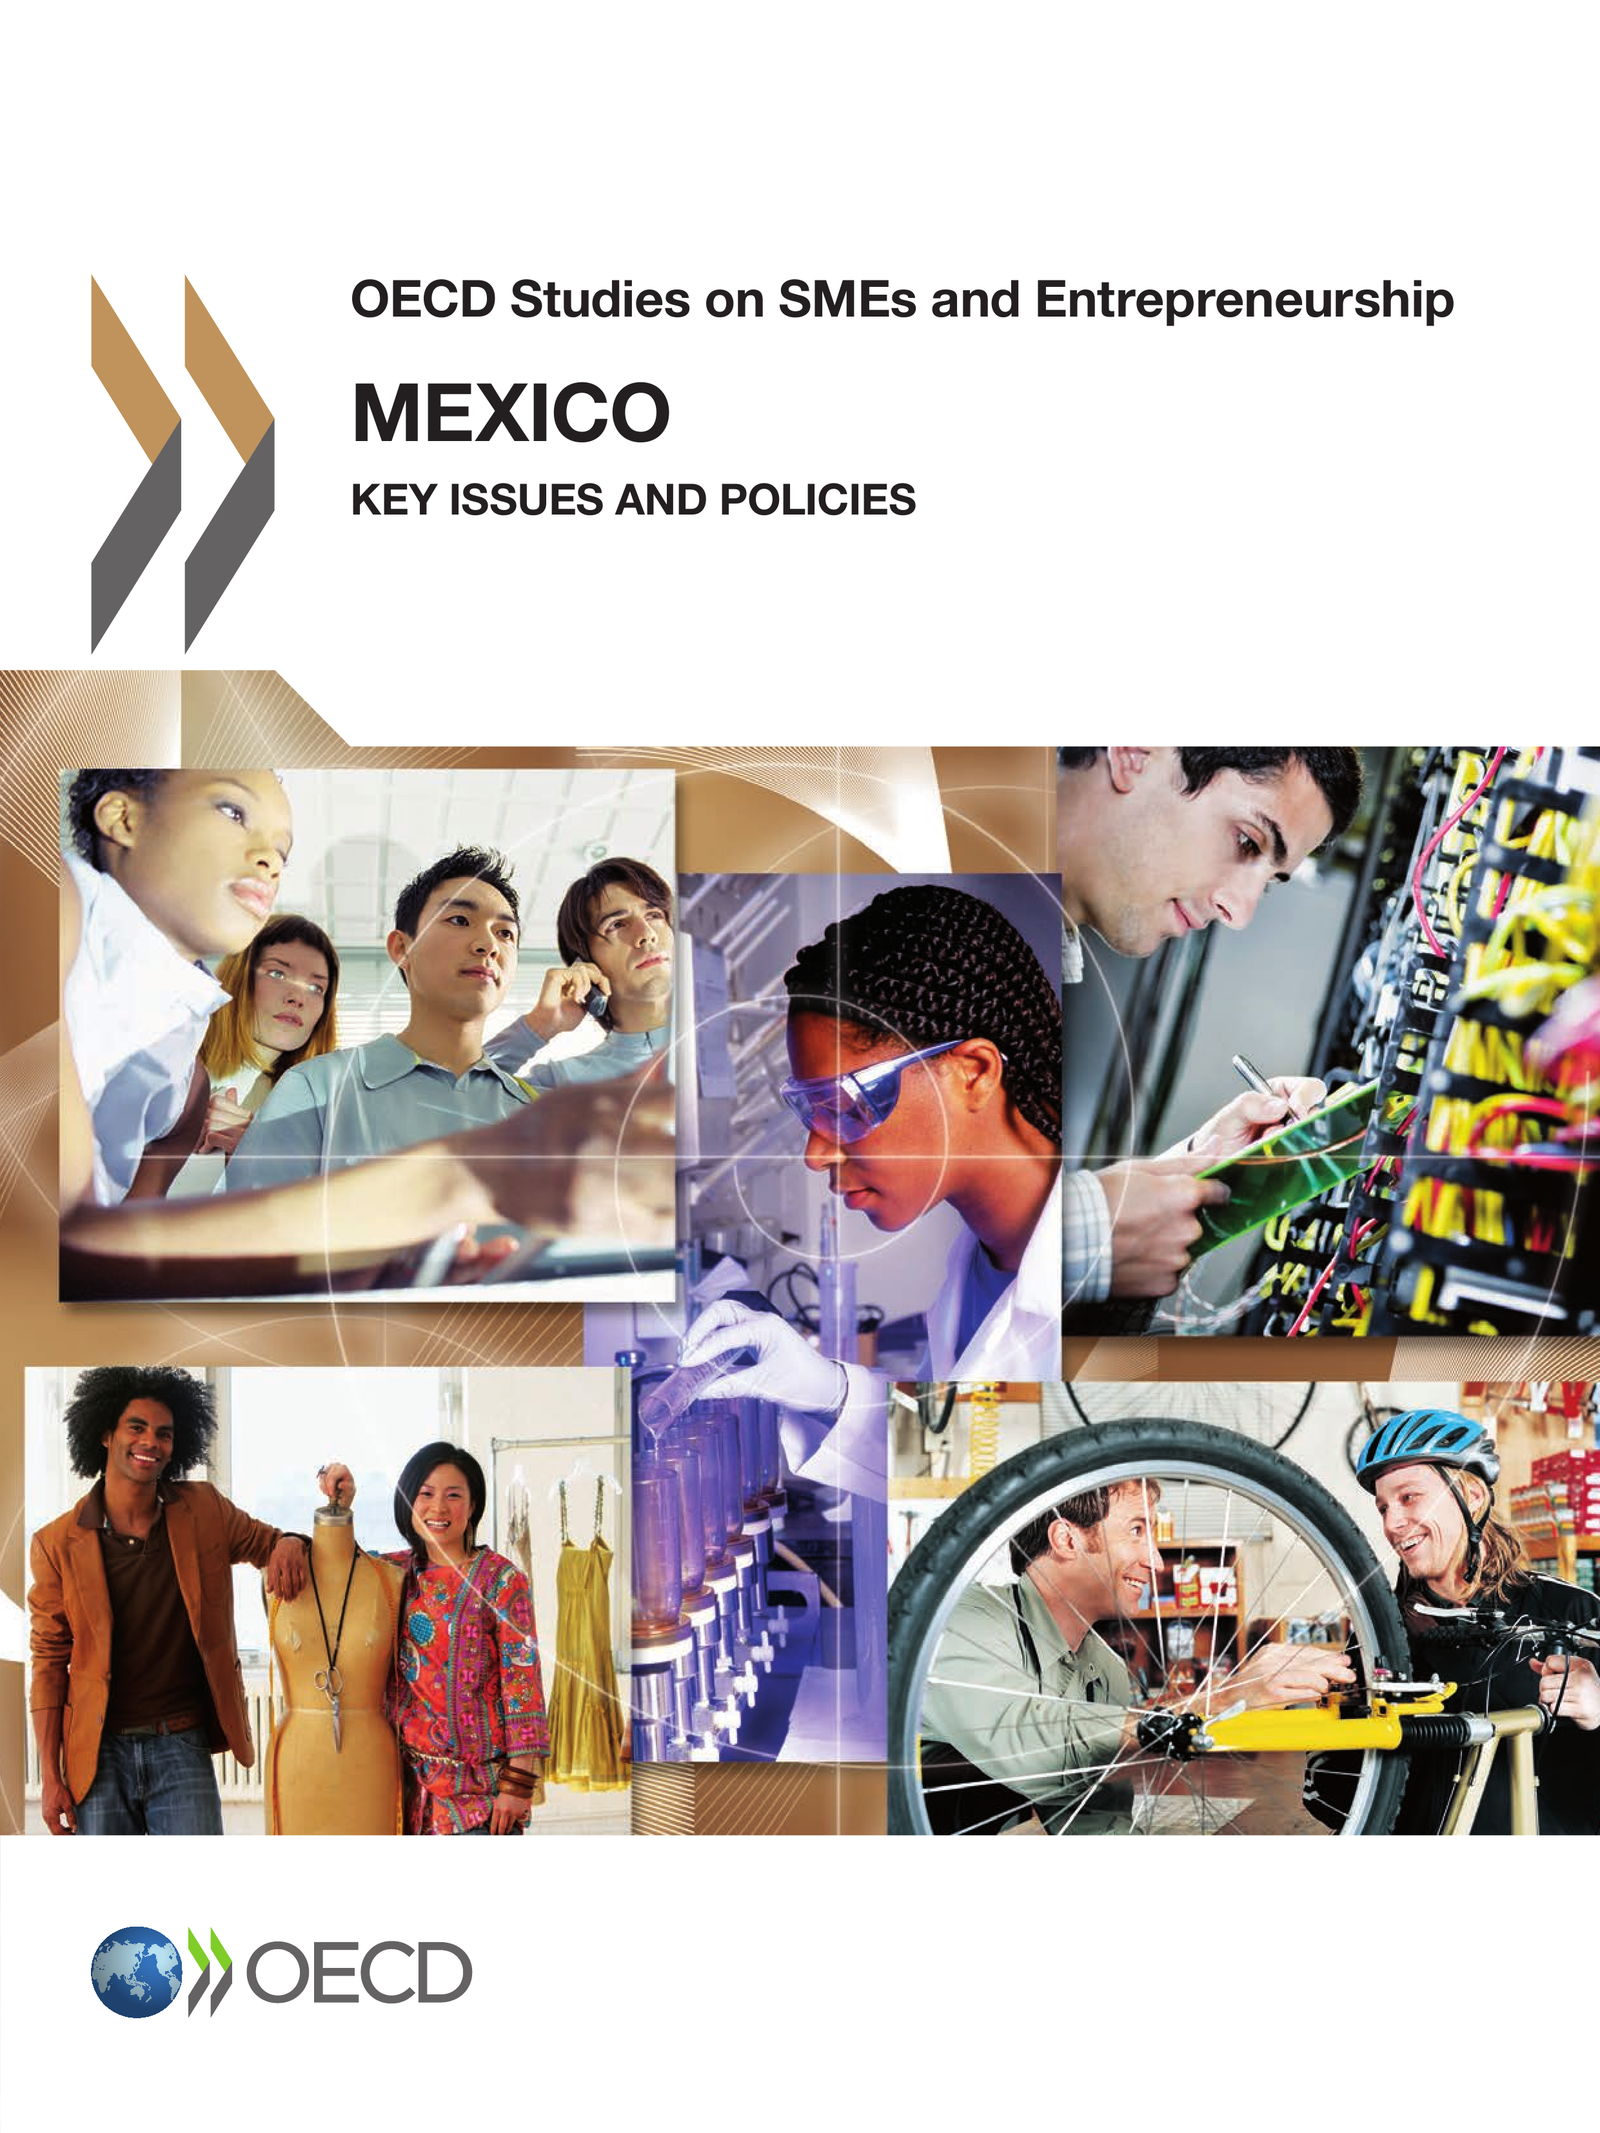 Mexico: Key Issues and Policies